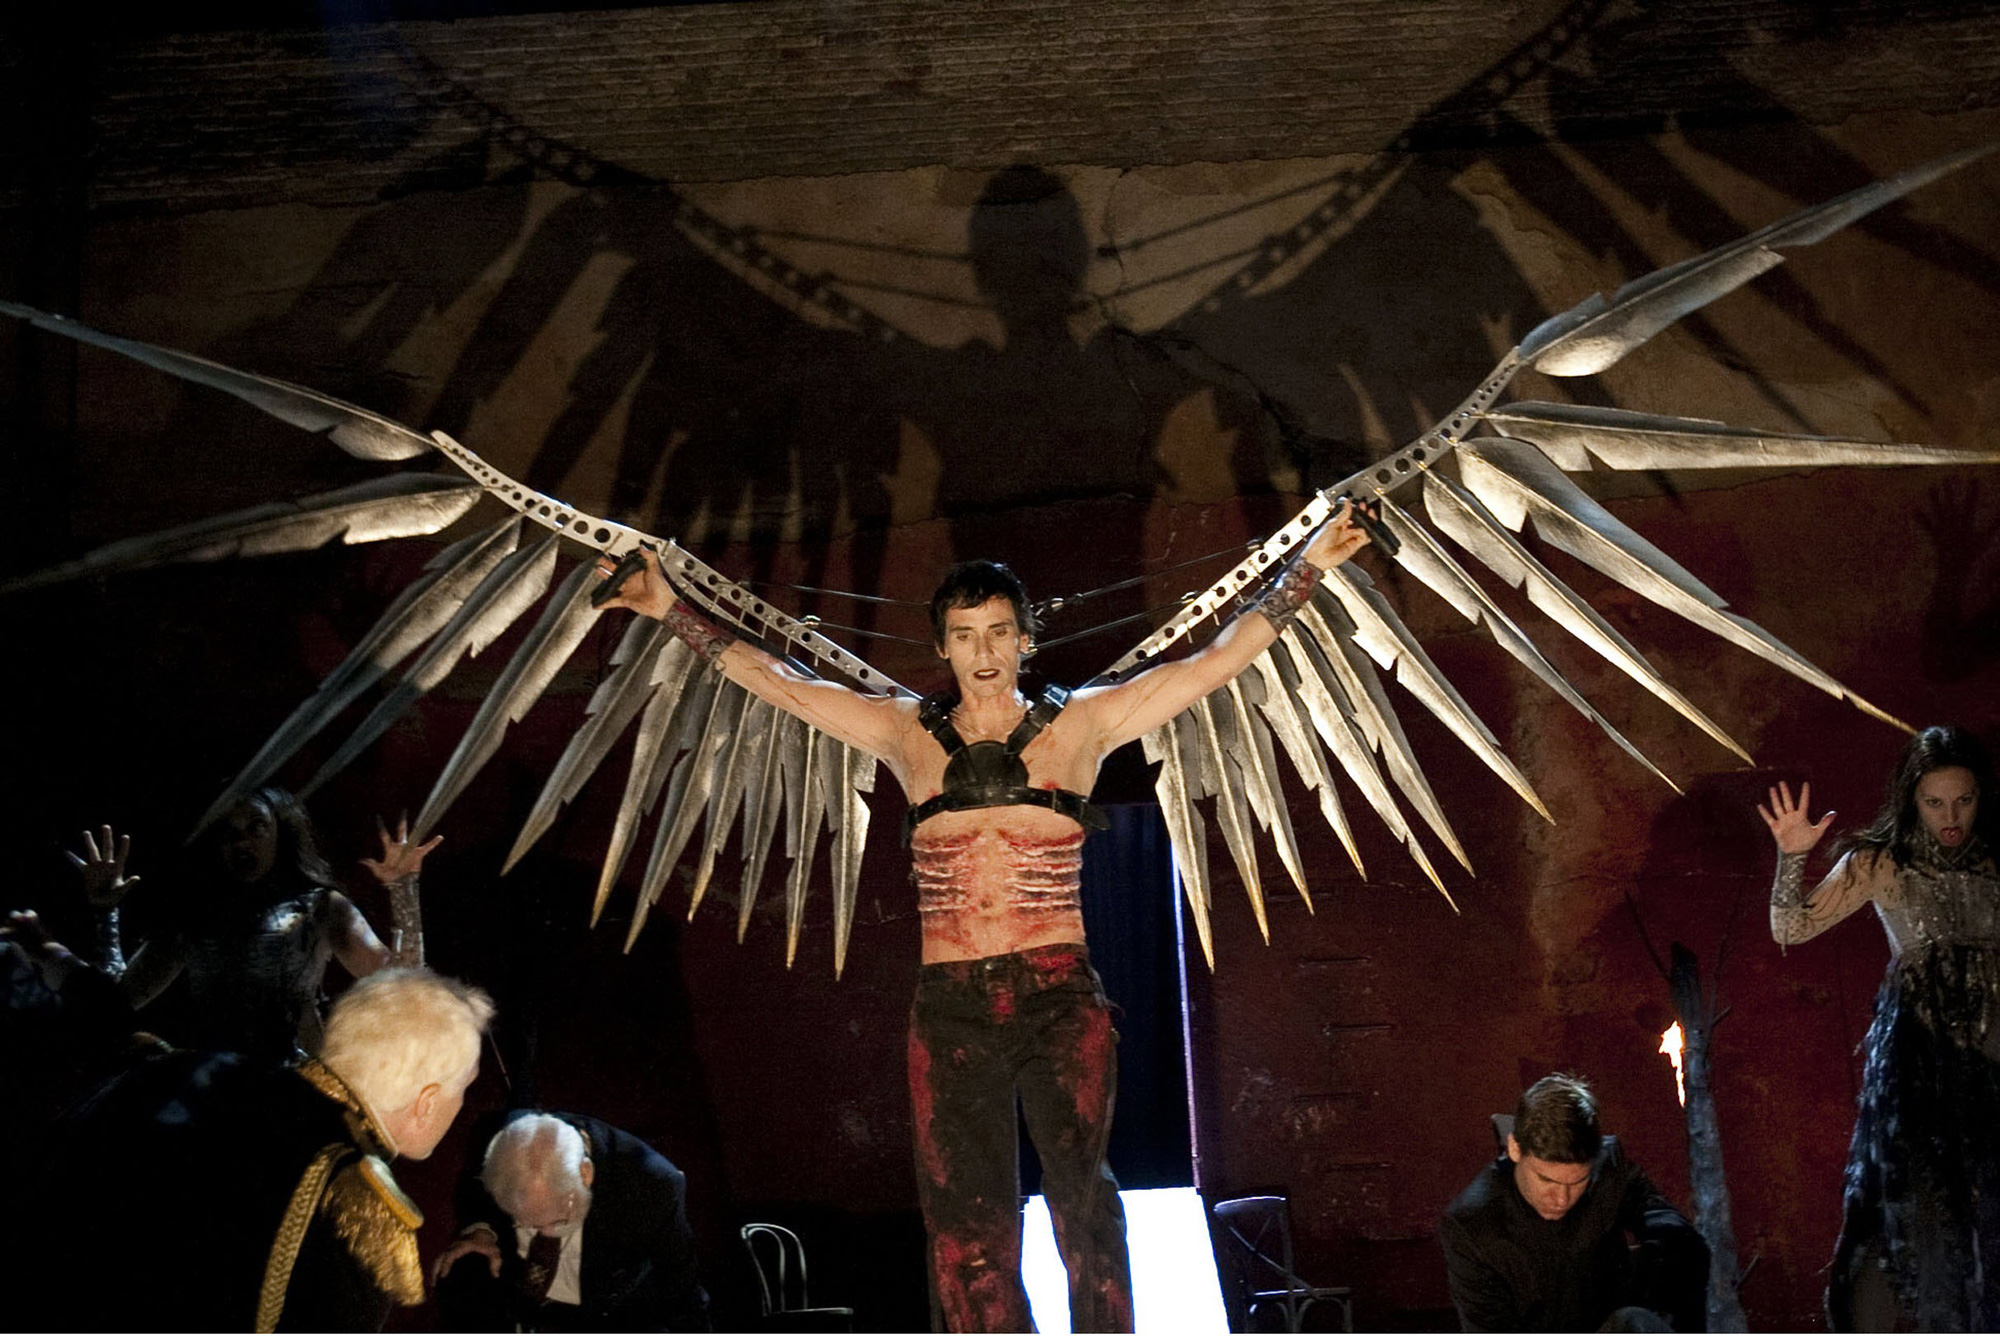 Photograph of Christian Camargo in the Tempest directed by Sam Mendes, 2010